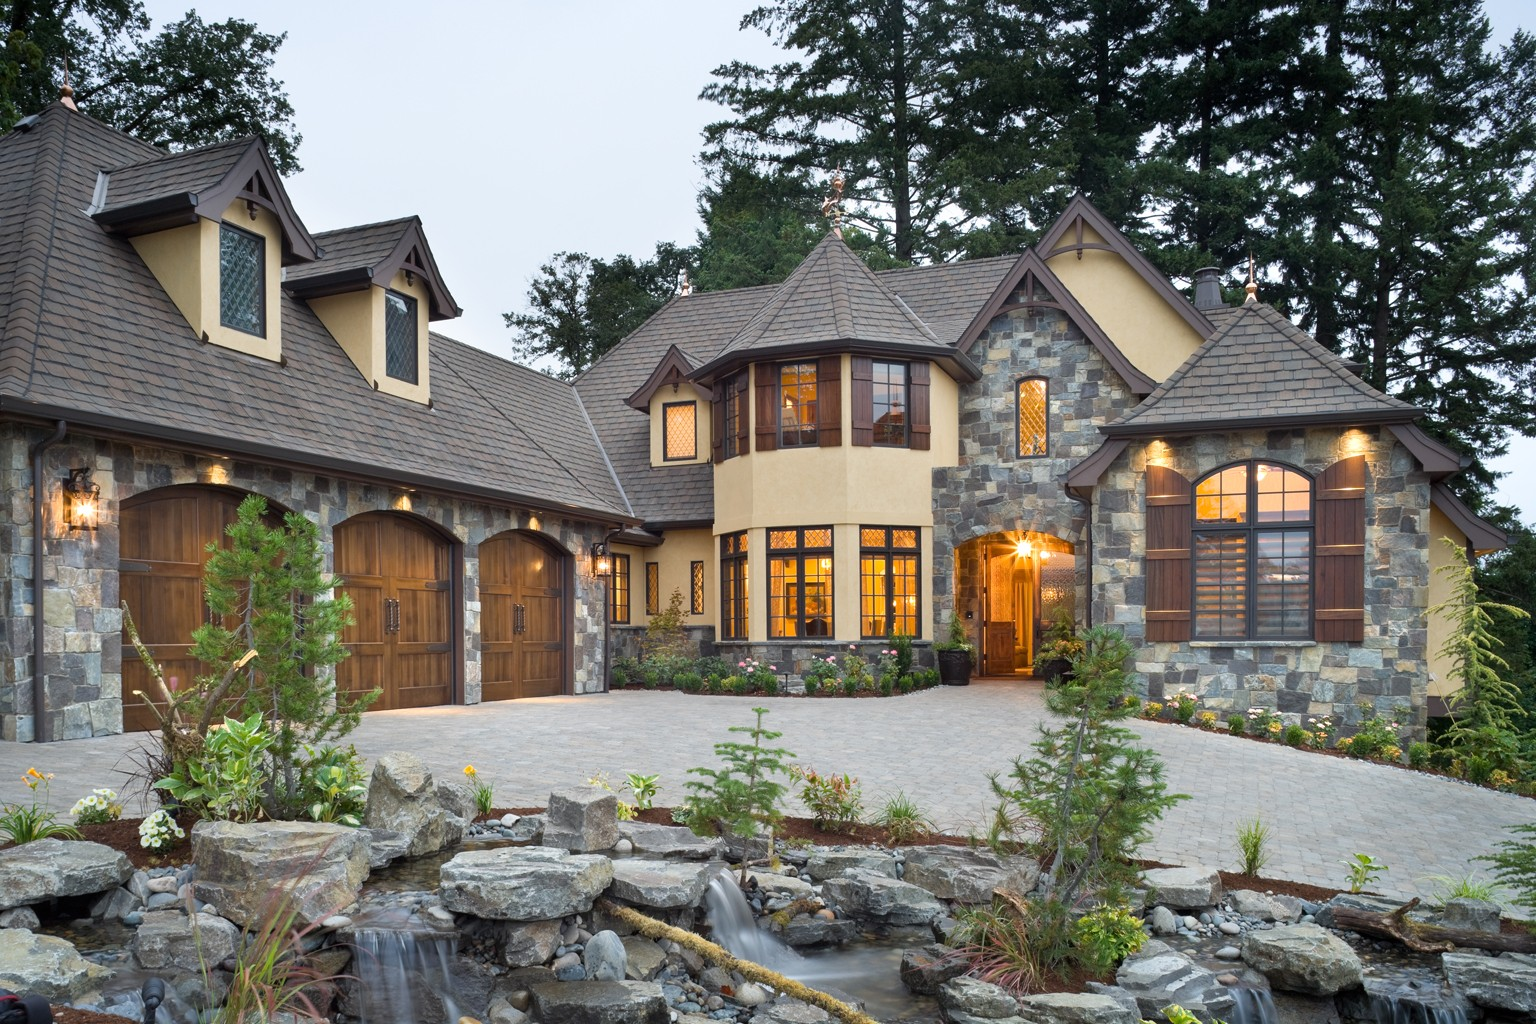 39 rivendell manor 39 by bc custom homes represents mascord 39 s for Building our dream home blog